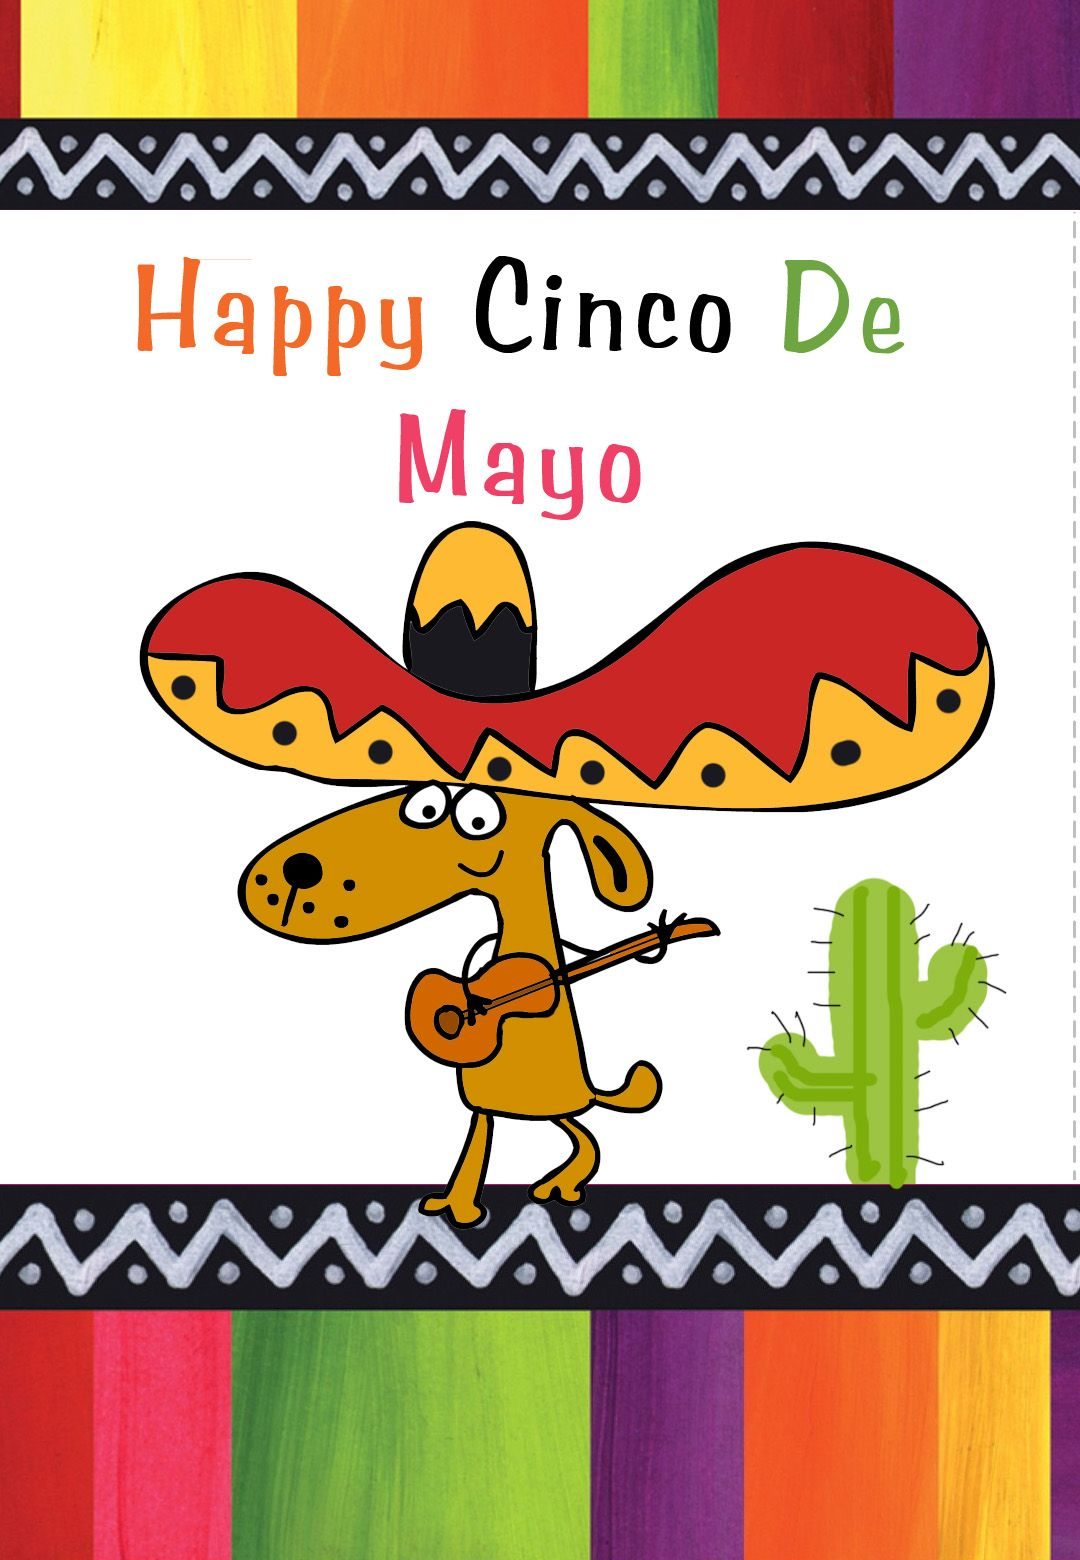 Free printable happy cinco de mayo greeting card ciincodemayo free printable happy cinco de mayo greeting card ciincodemayo m4hsunfo